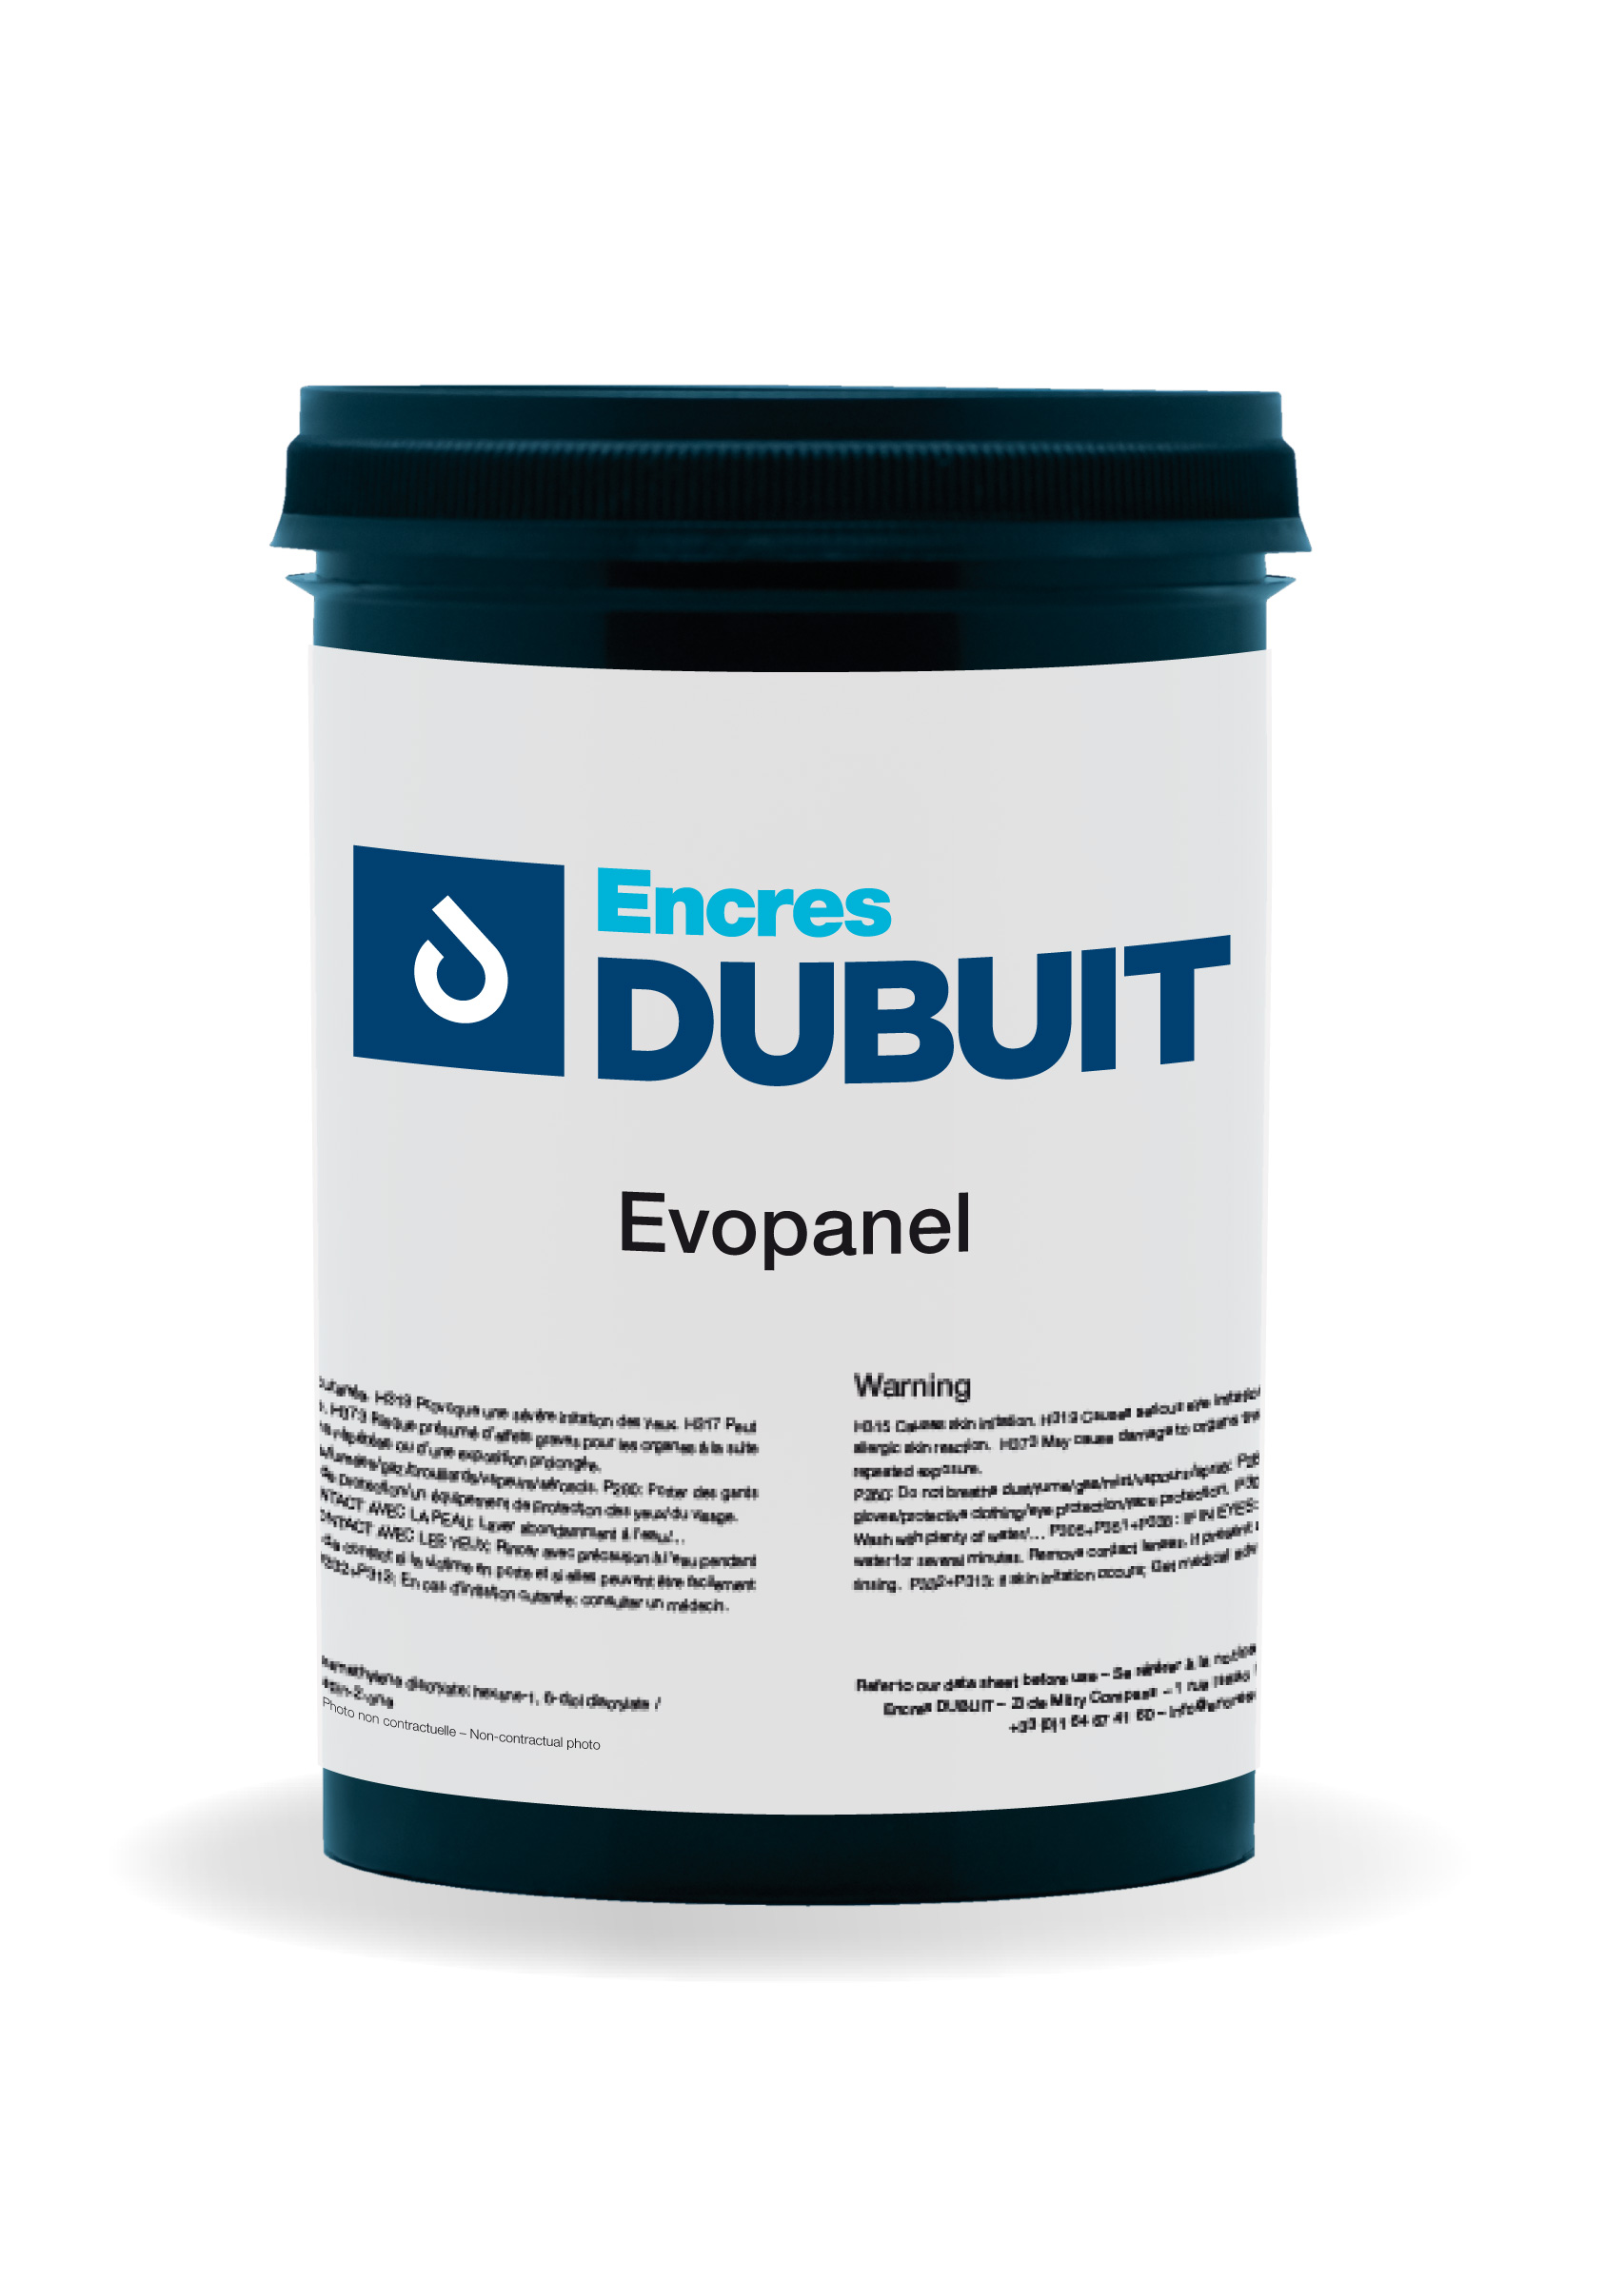 Evopanel Encres DUBUIT UV Screen Printing Ink